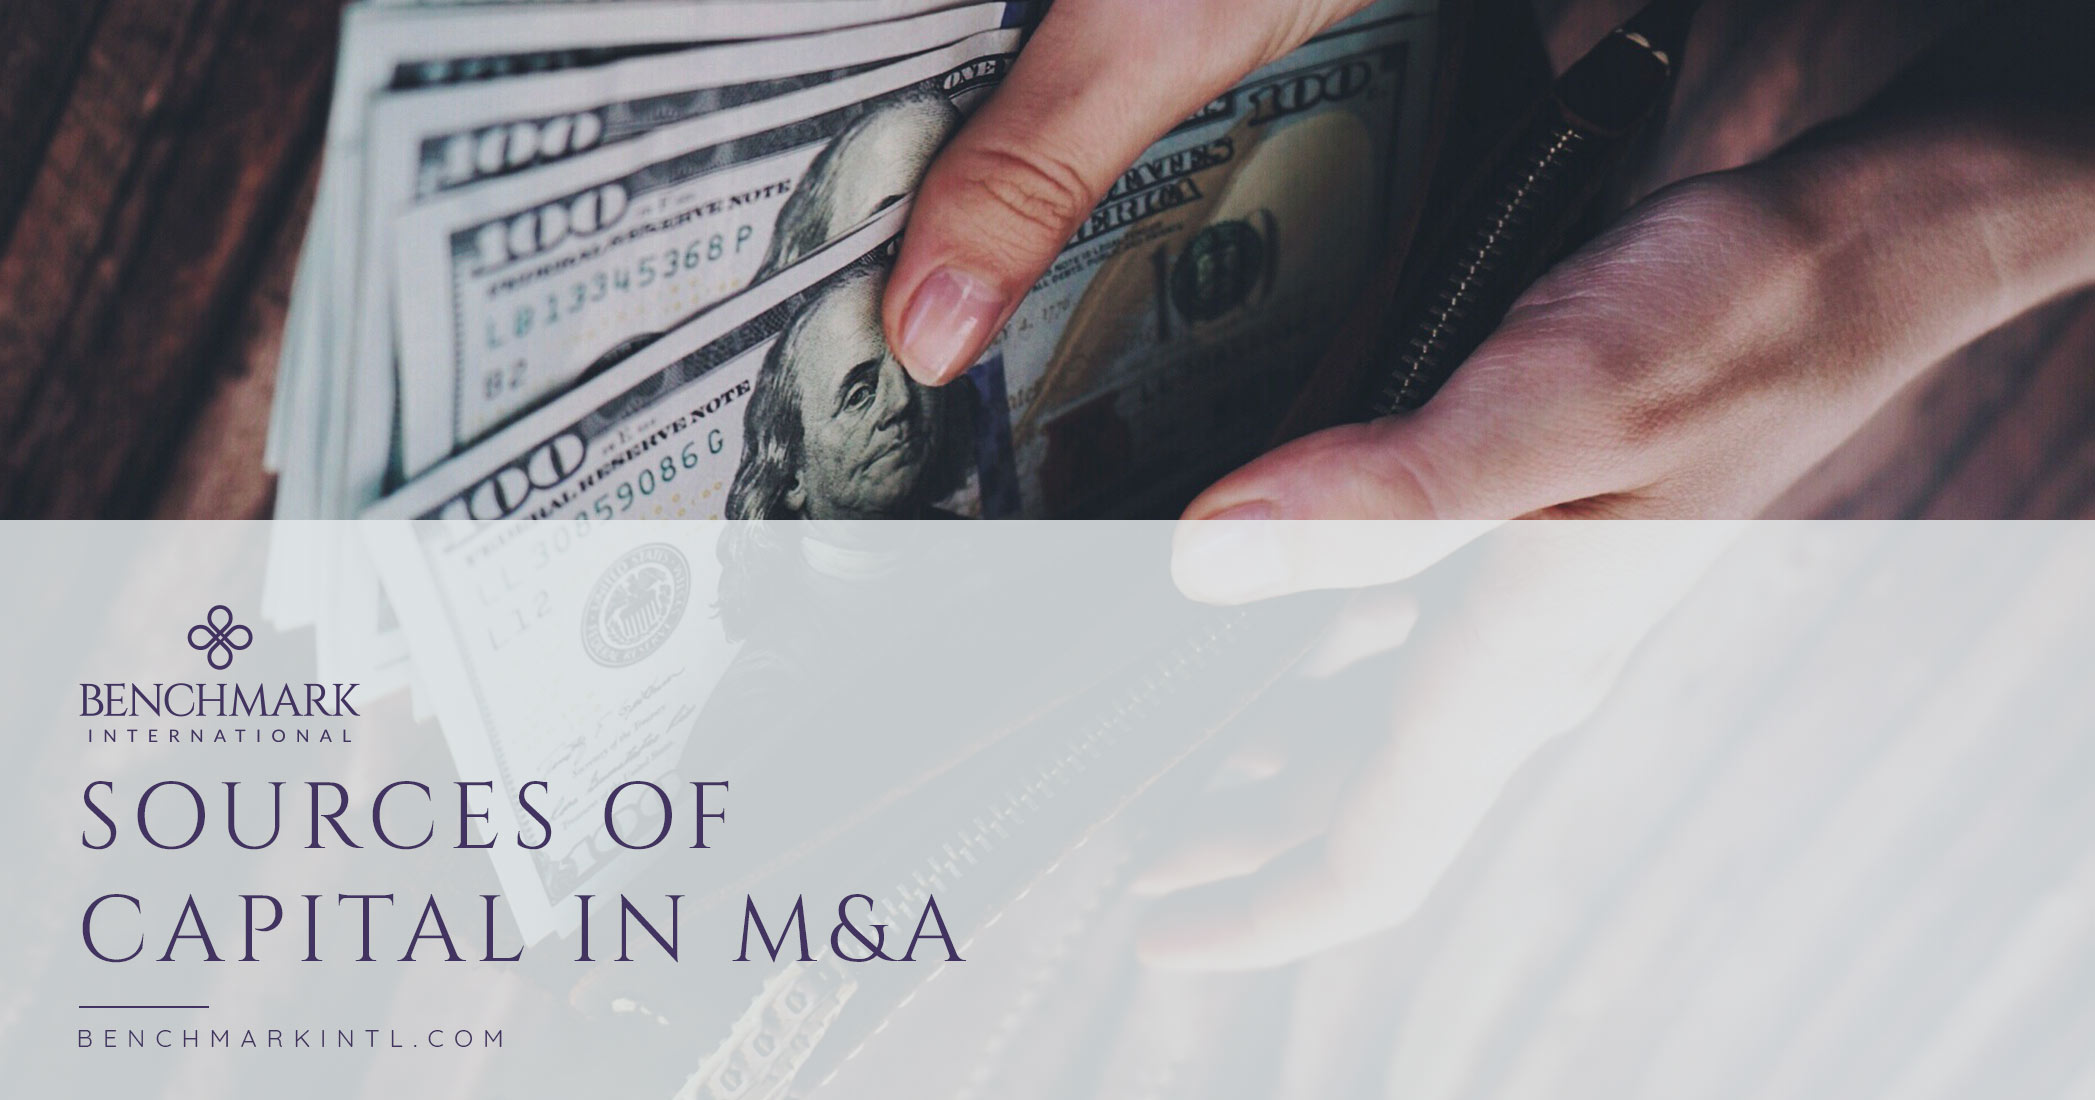 Sources of Capital in M&A